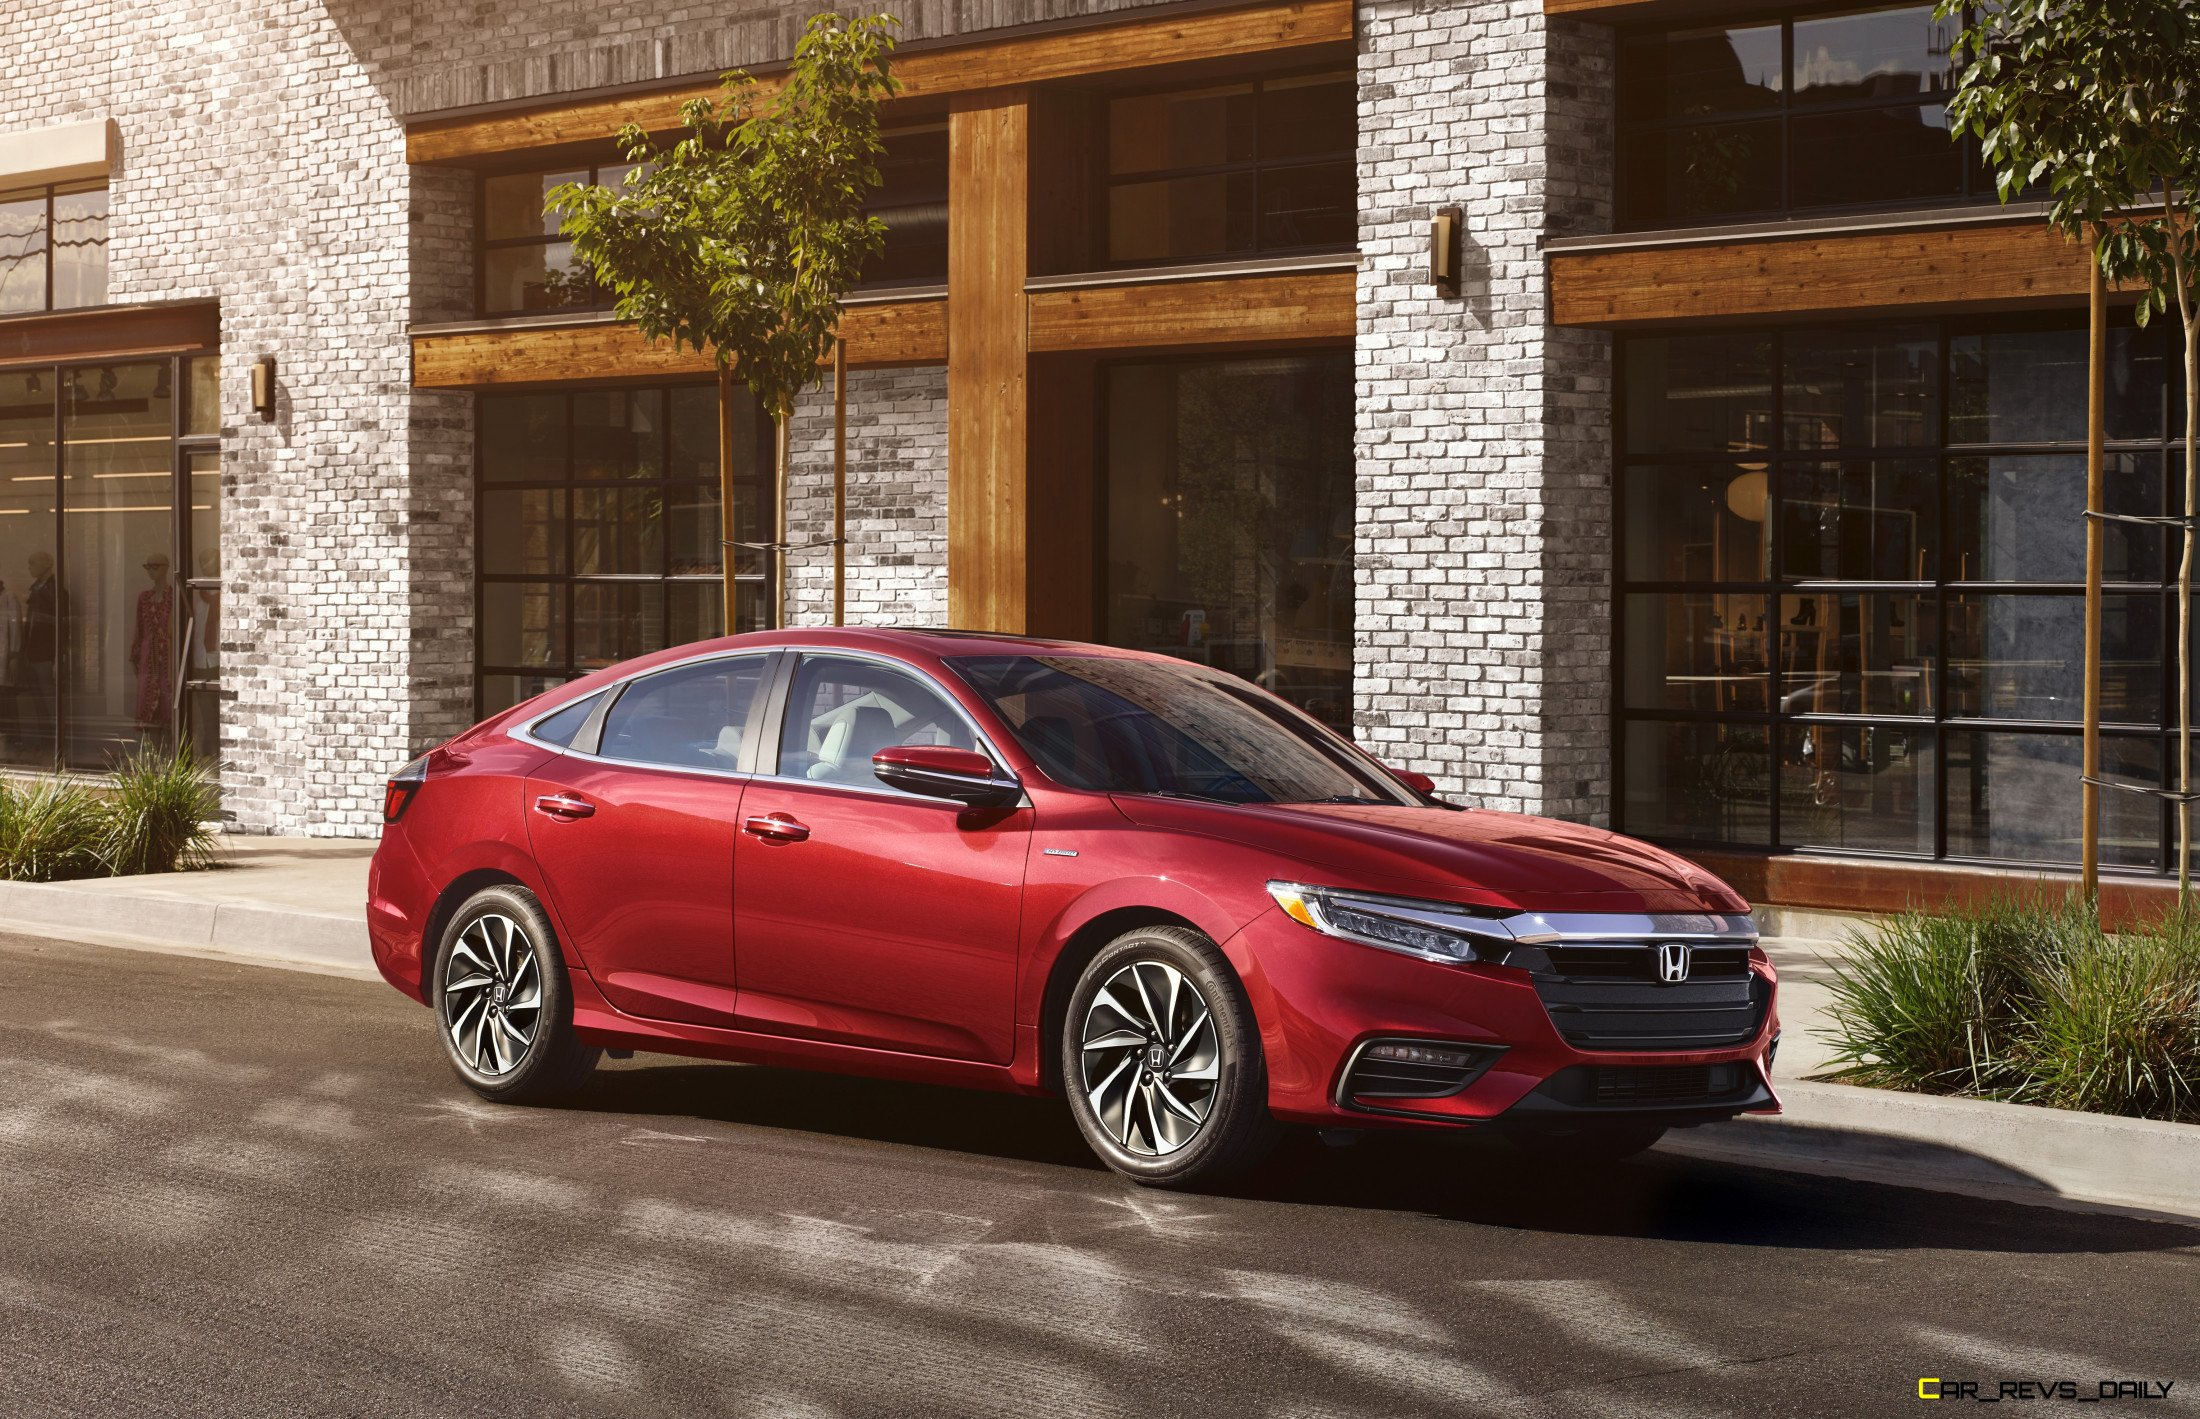 2021 Honda Insight Has Higher Price Tag Gains New Technology And Color Latest News Car Revs Daily Com